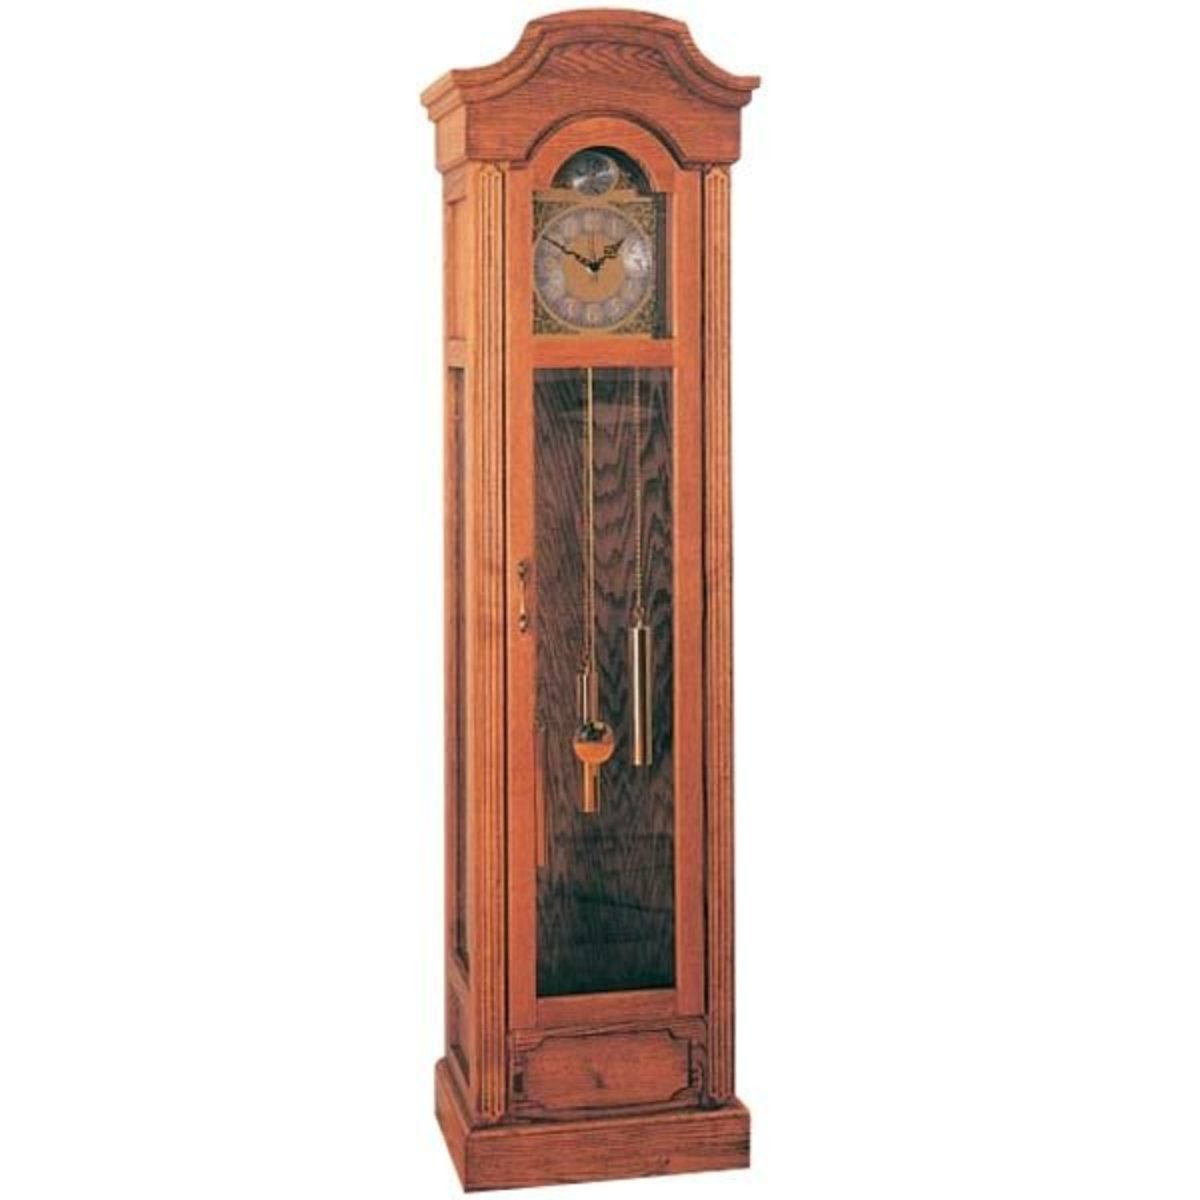 Woodworking Project Paper Plan To Build Grandfather Clock Plan No 935